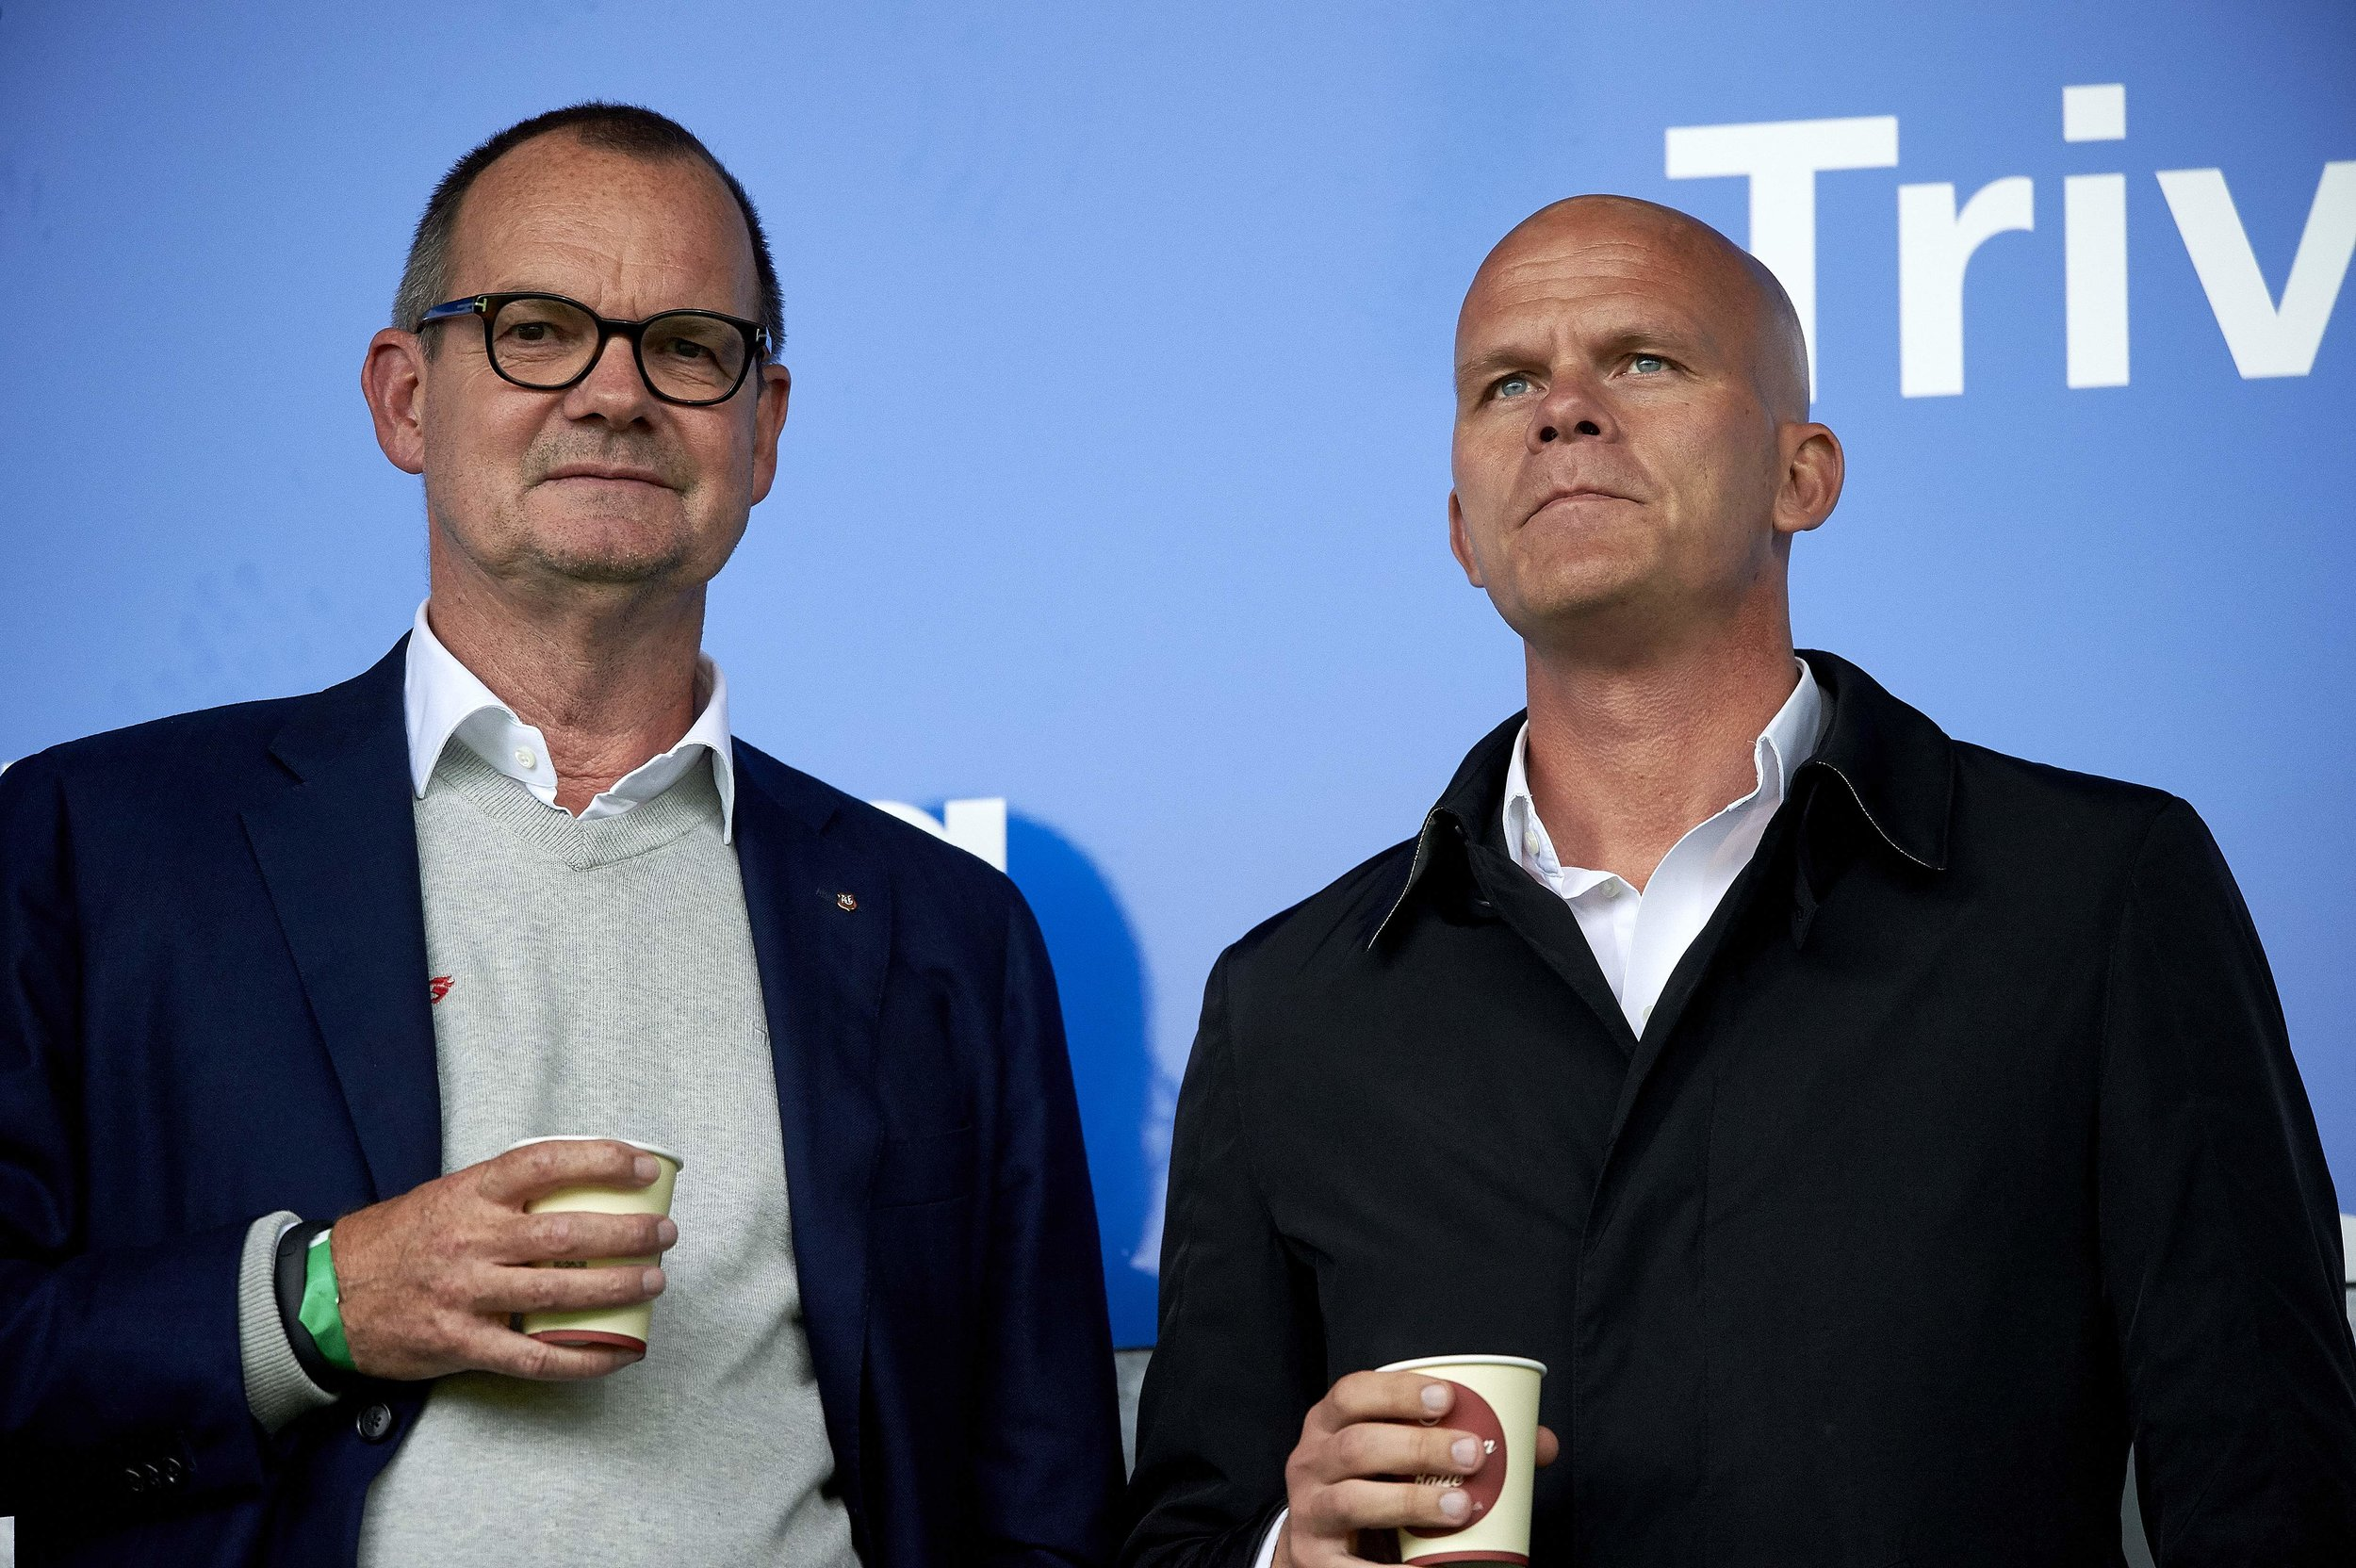 Lars Fournais med tidligere sportschef, Jens Andersson. Foto: Getty Images